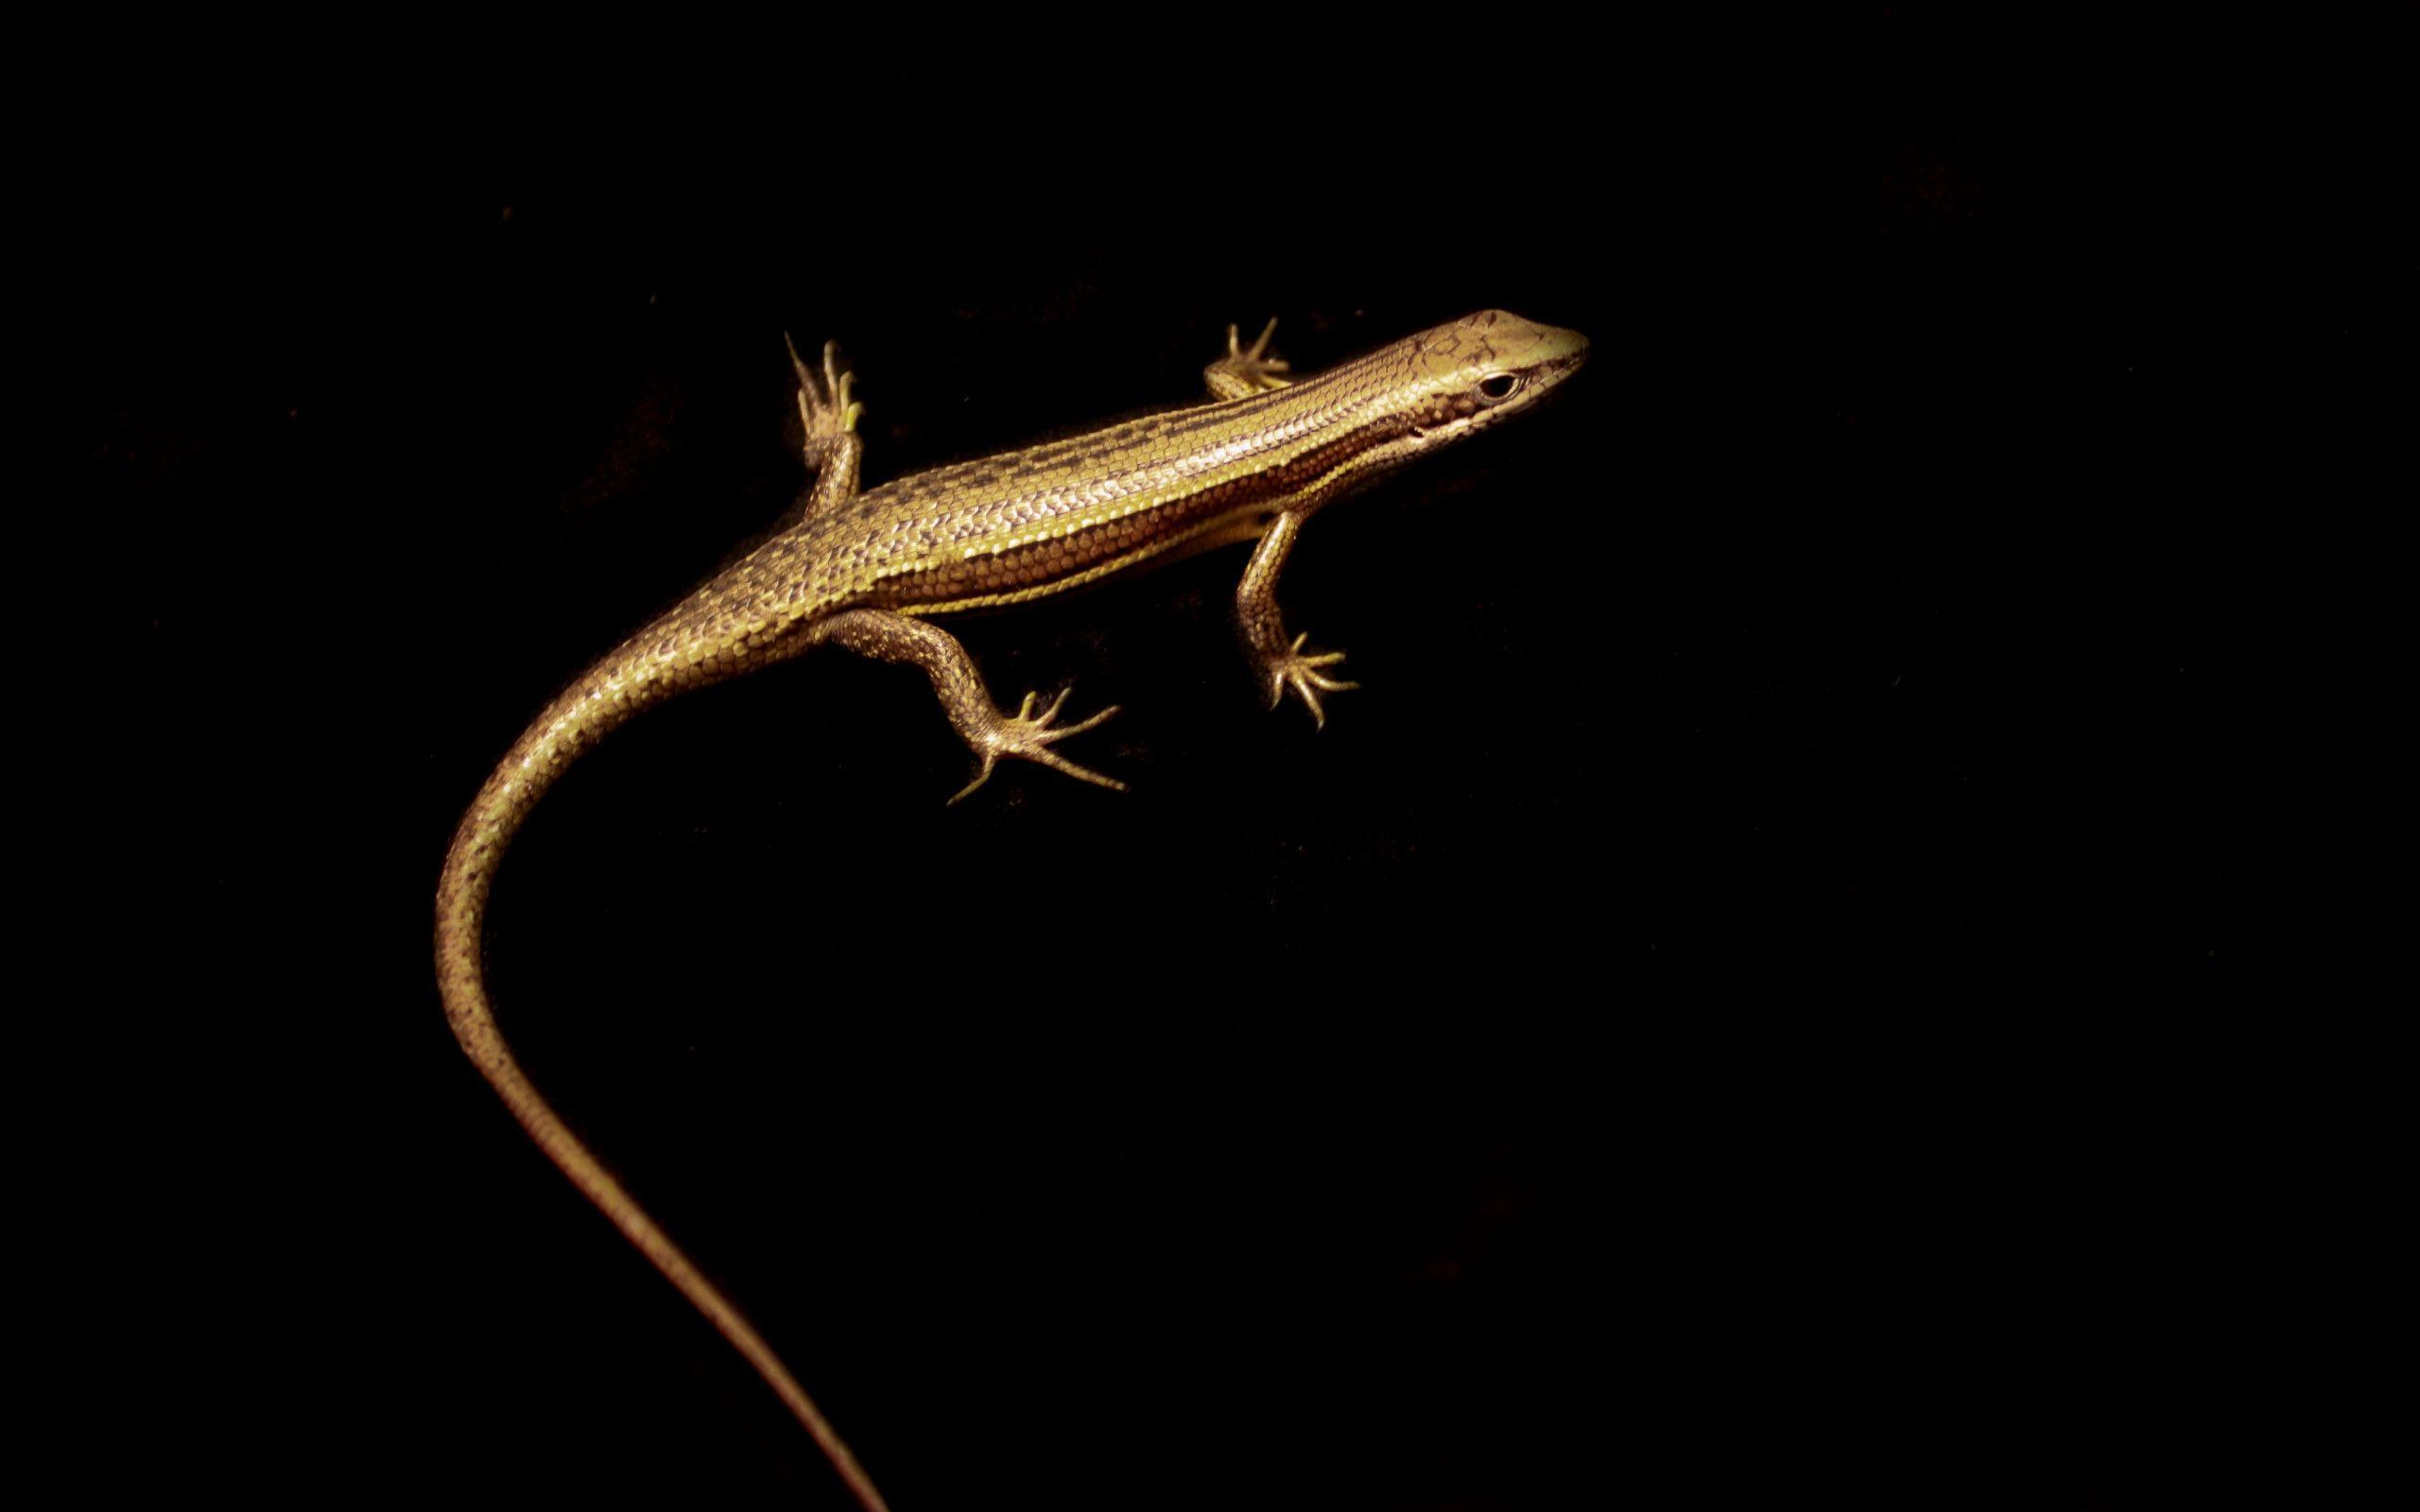 Lizard Wallpapers - Wallpaper Cave